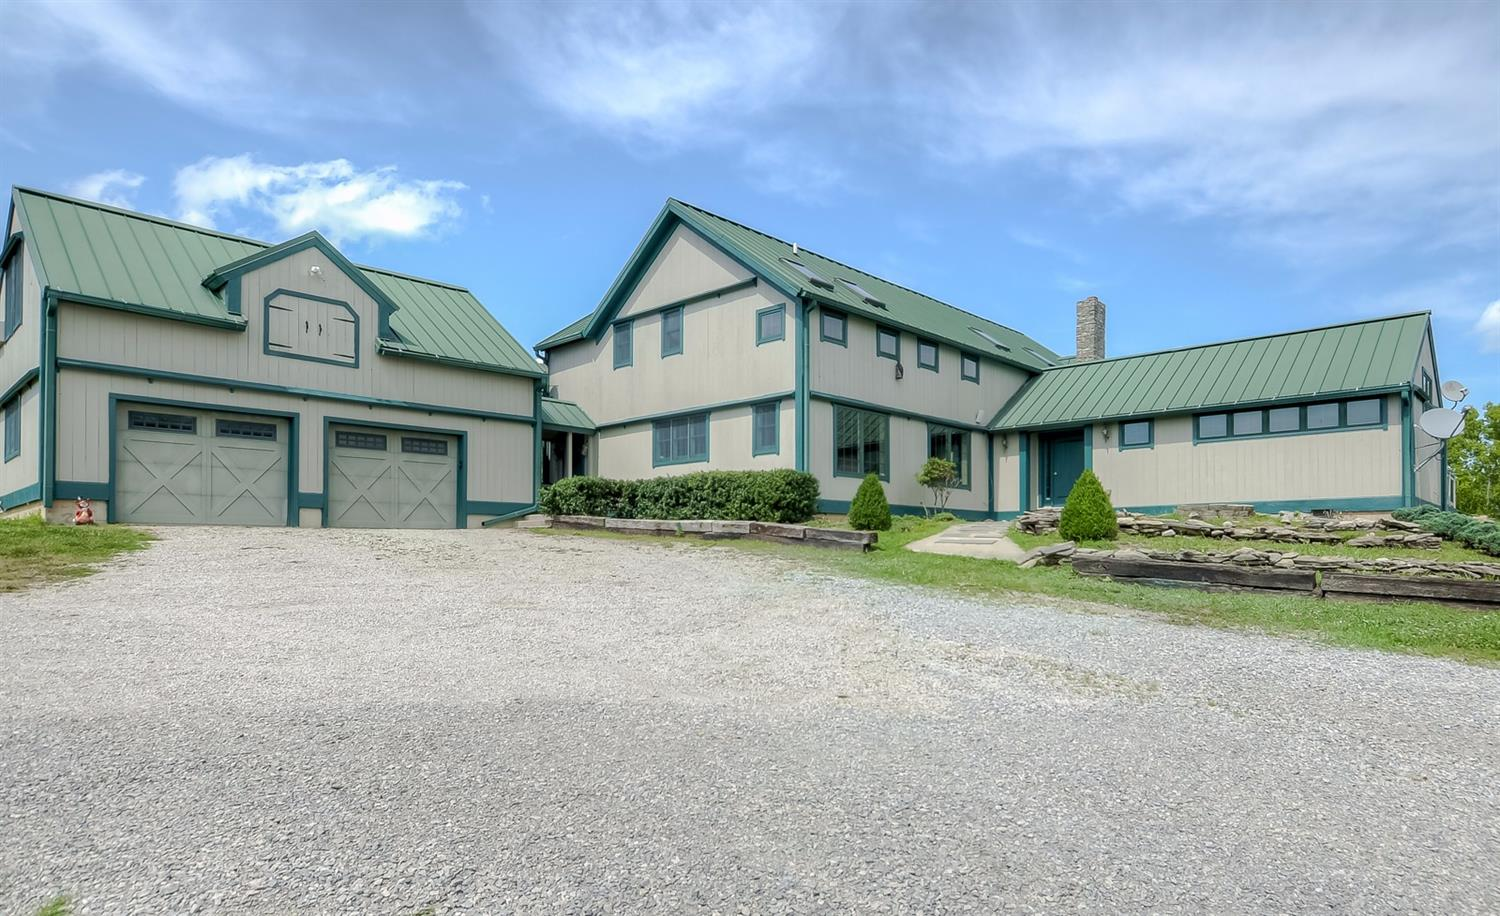 398-A E Honaker, Georgetown, KY 40379